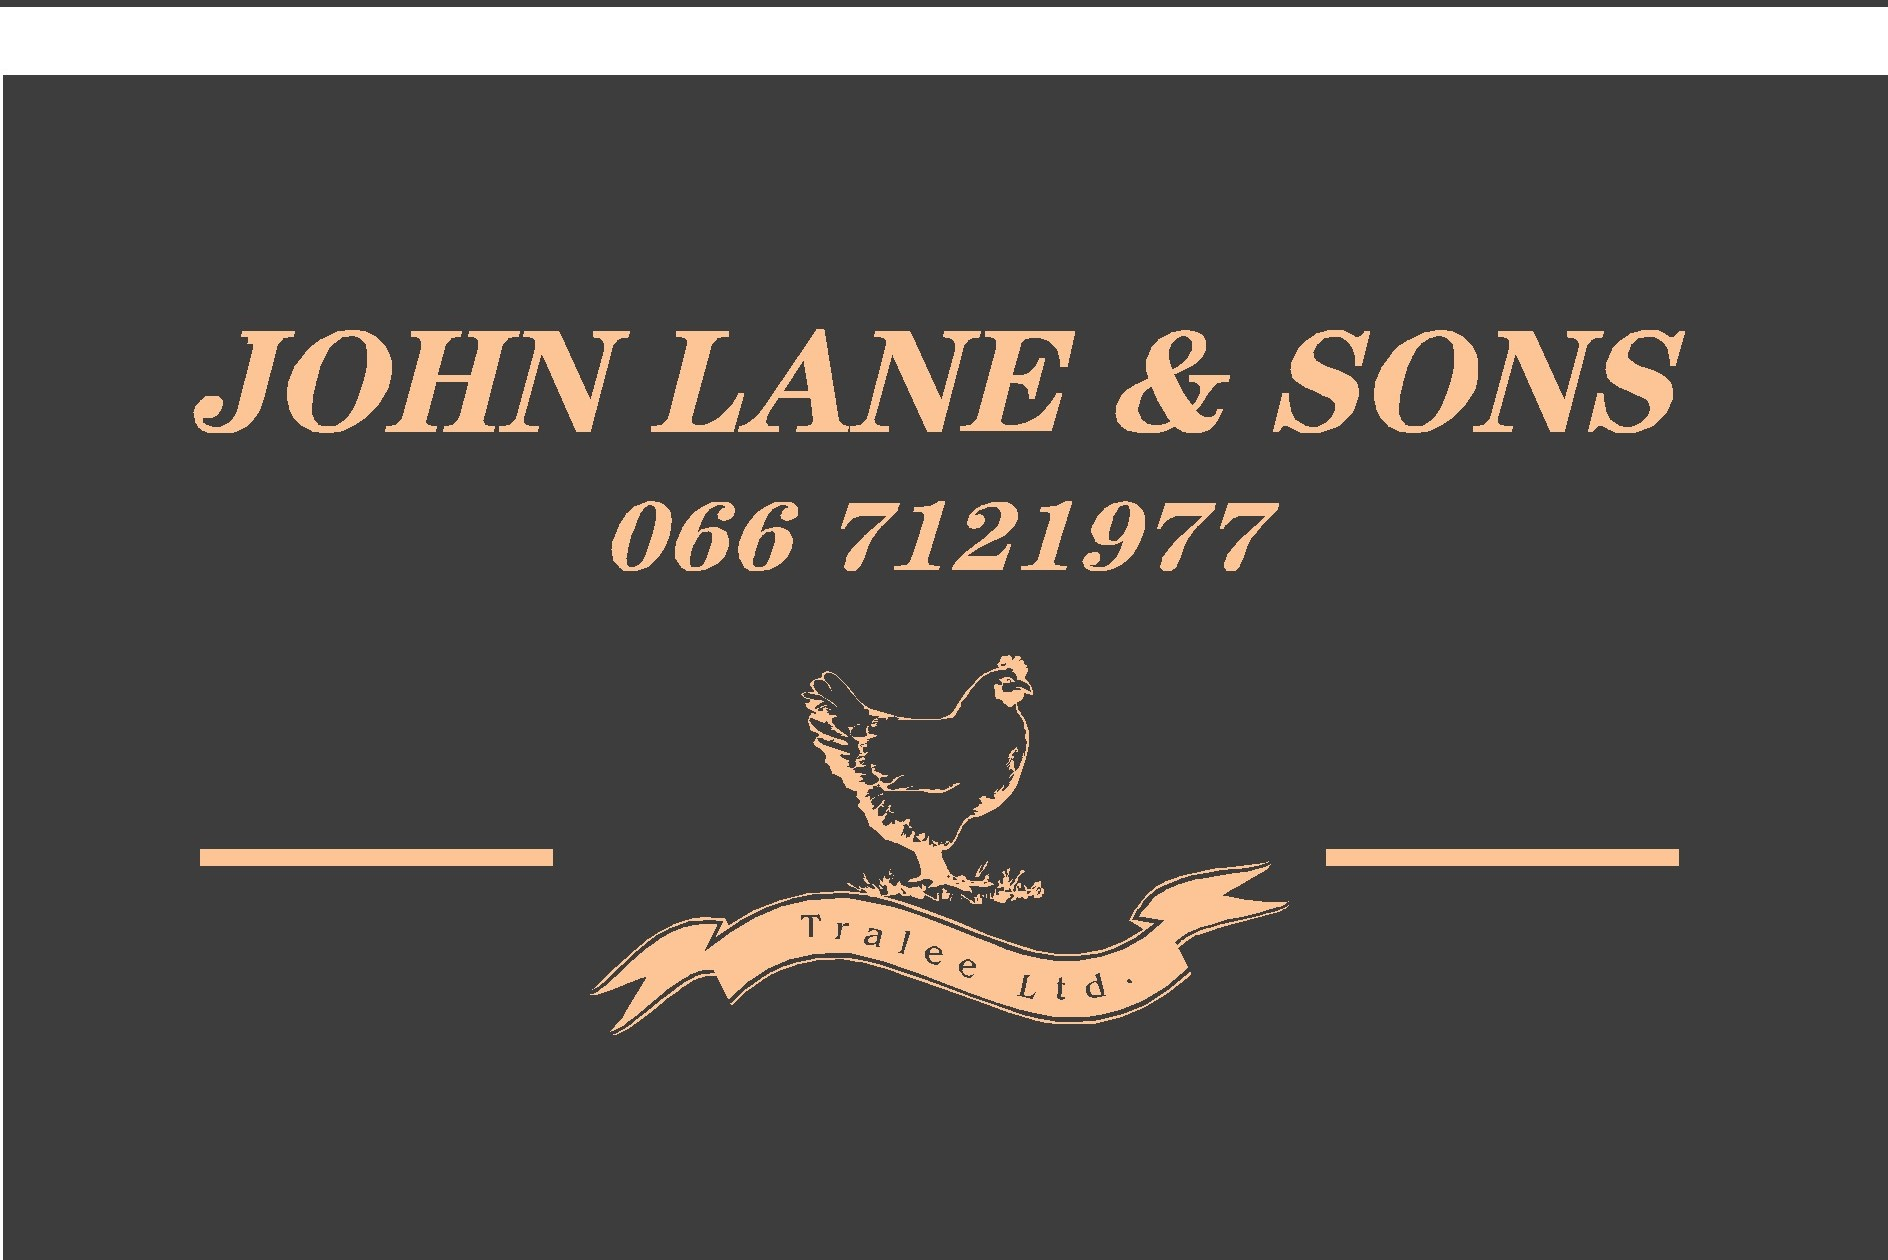 John Lane and Sons